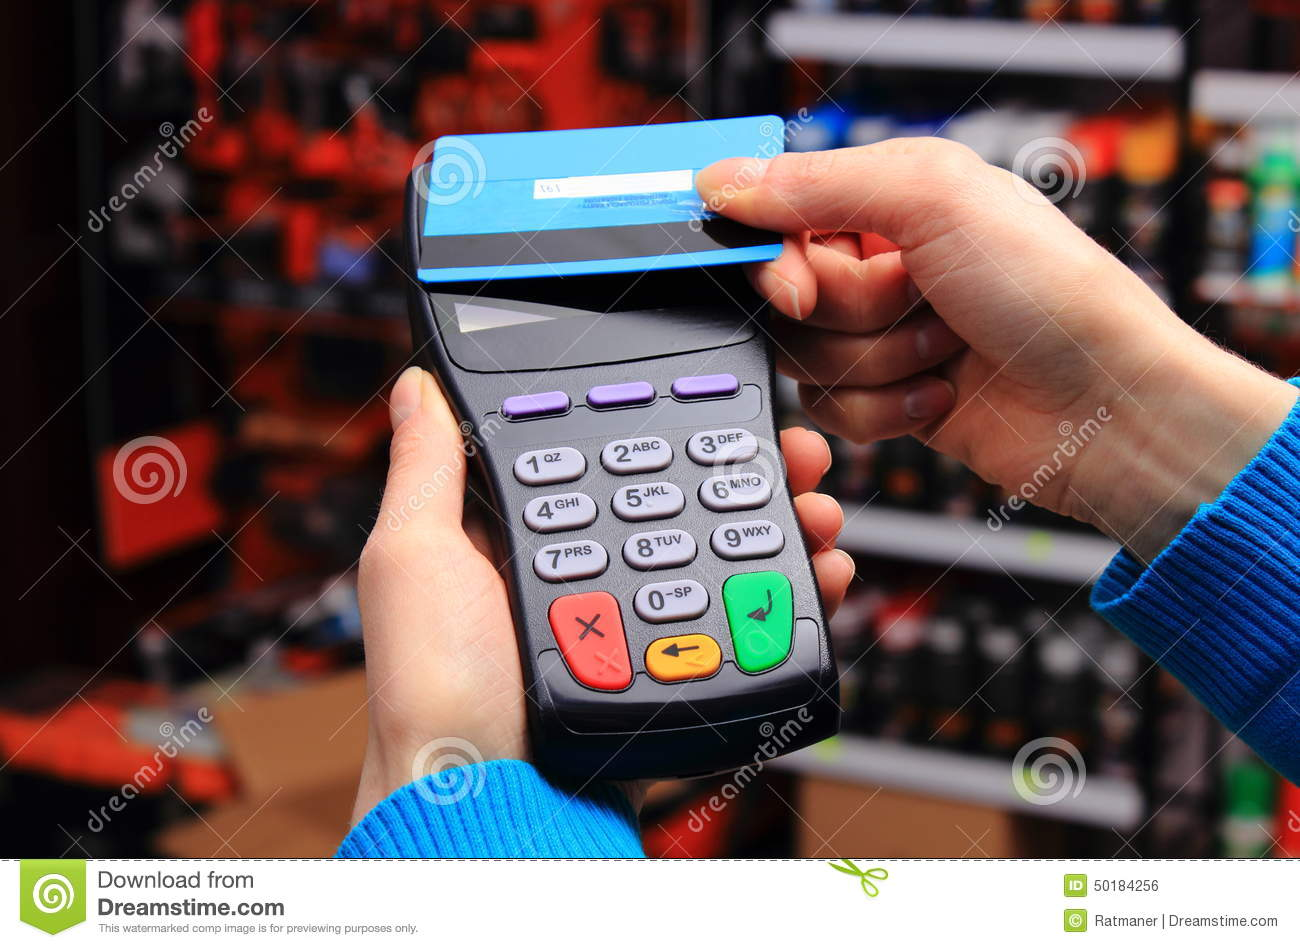 nfc technology Here are some, leading manufacturers of nfc chips are marvell technology group ltd, sony corp, ams ag, mstar semiconductor inc, mediatek inc, stmicroelectronics, qualcomm inc, texas instruments inc, broadcom corp, and nxp.